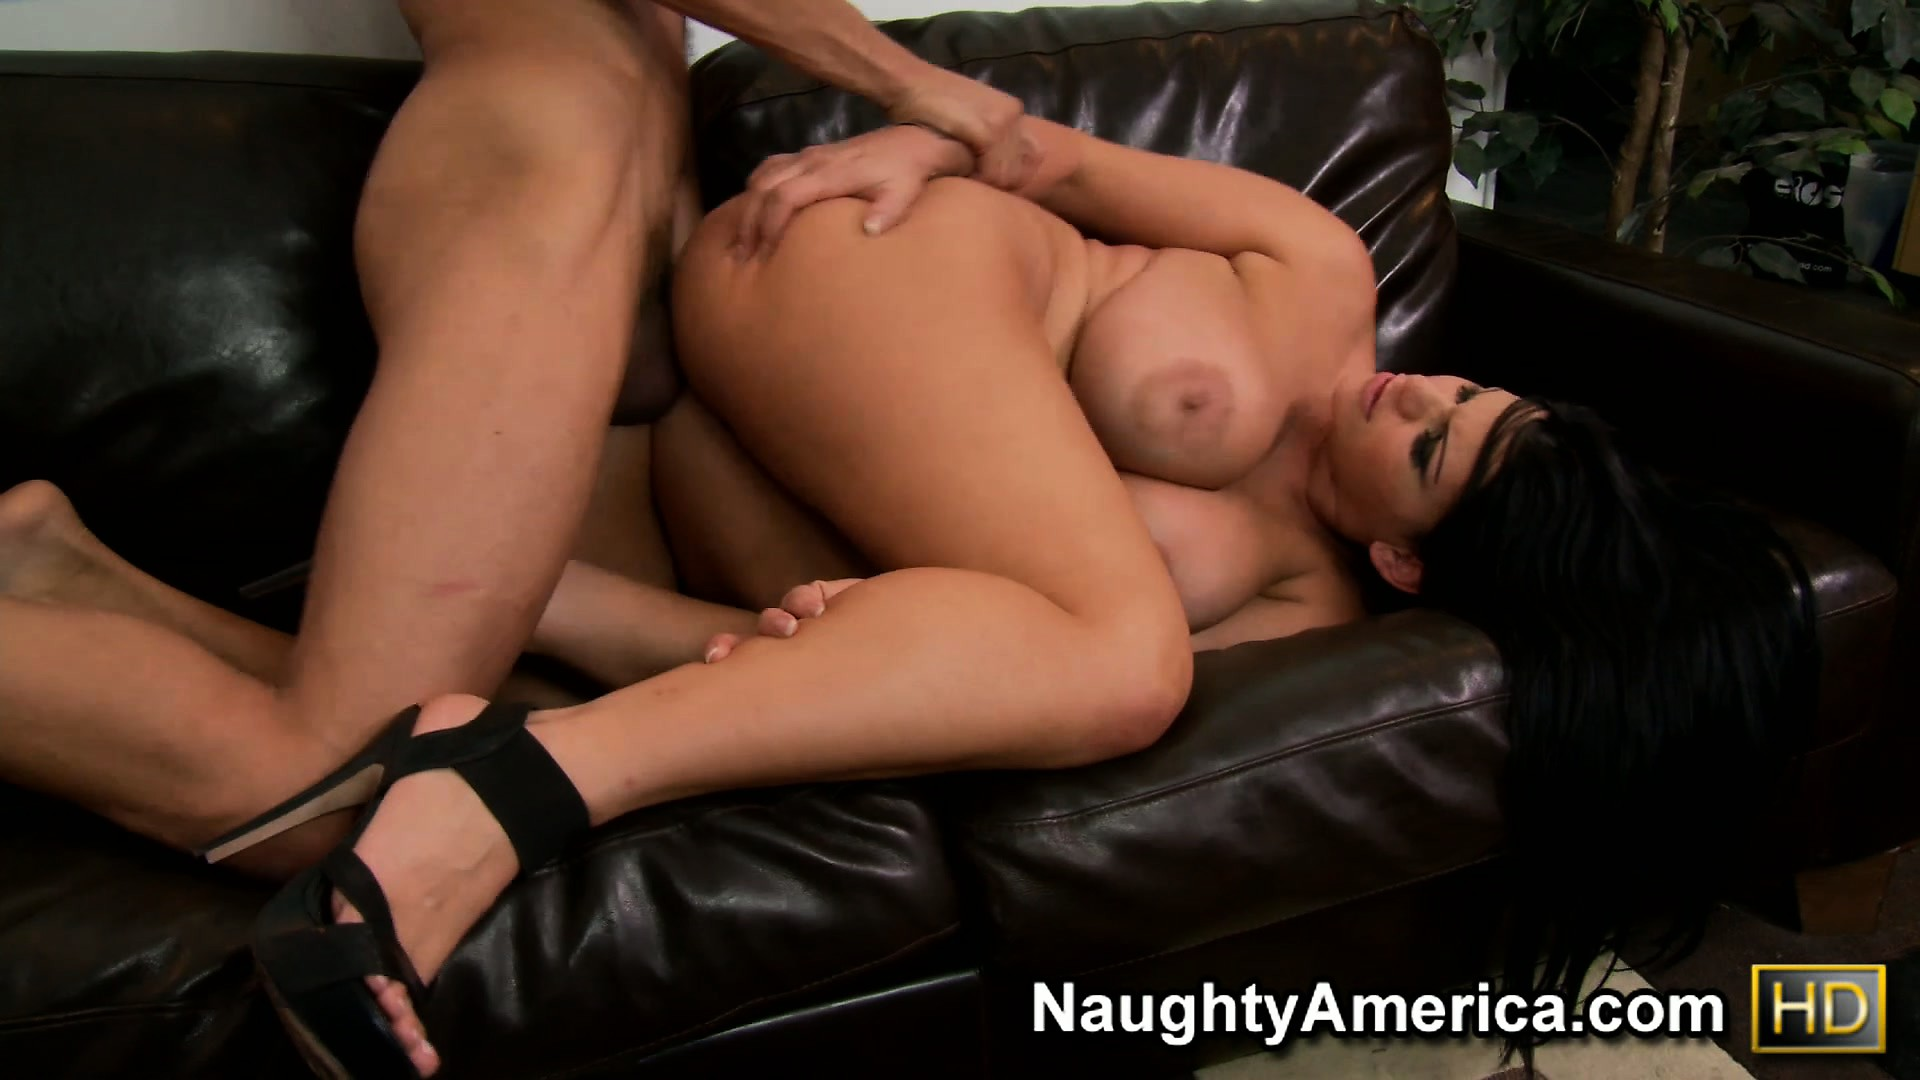 Porn Tube of Bending Forward, Angelina Has Him Pumping Her Tight Ass Hard And Deep From Behind